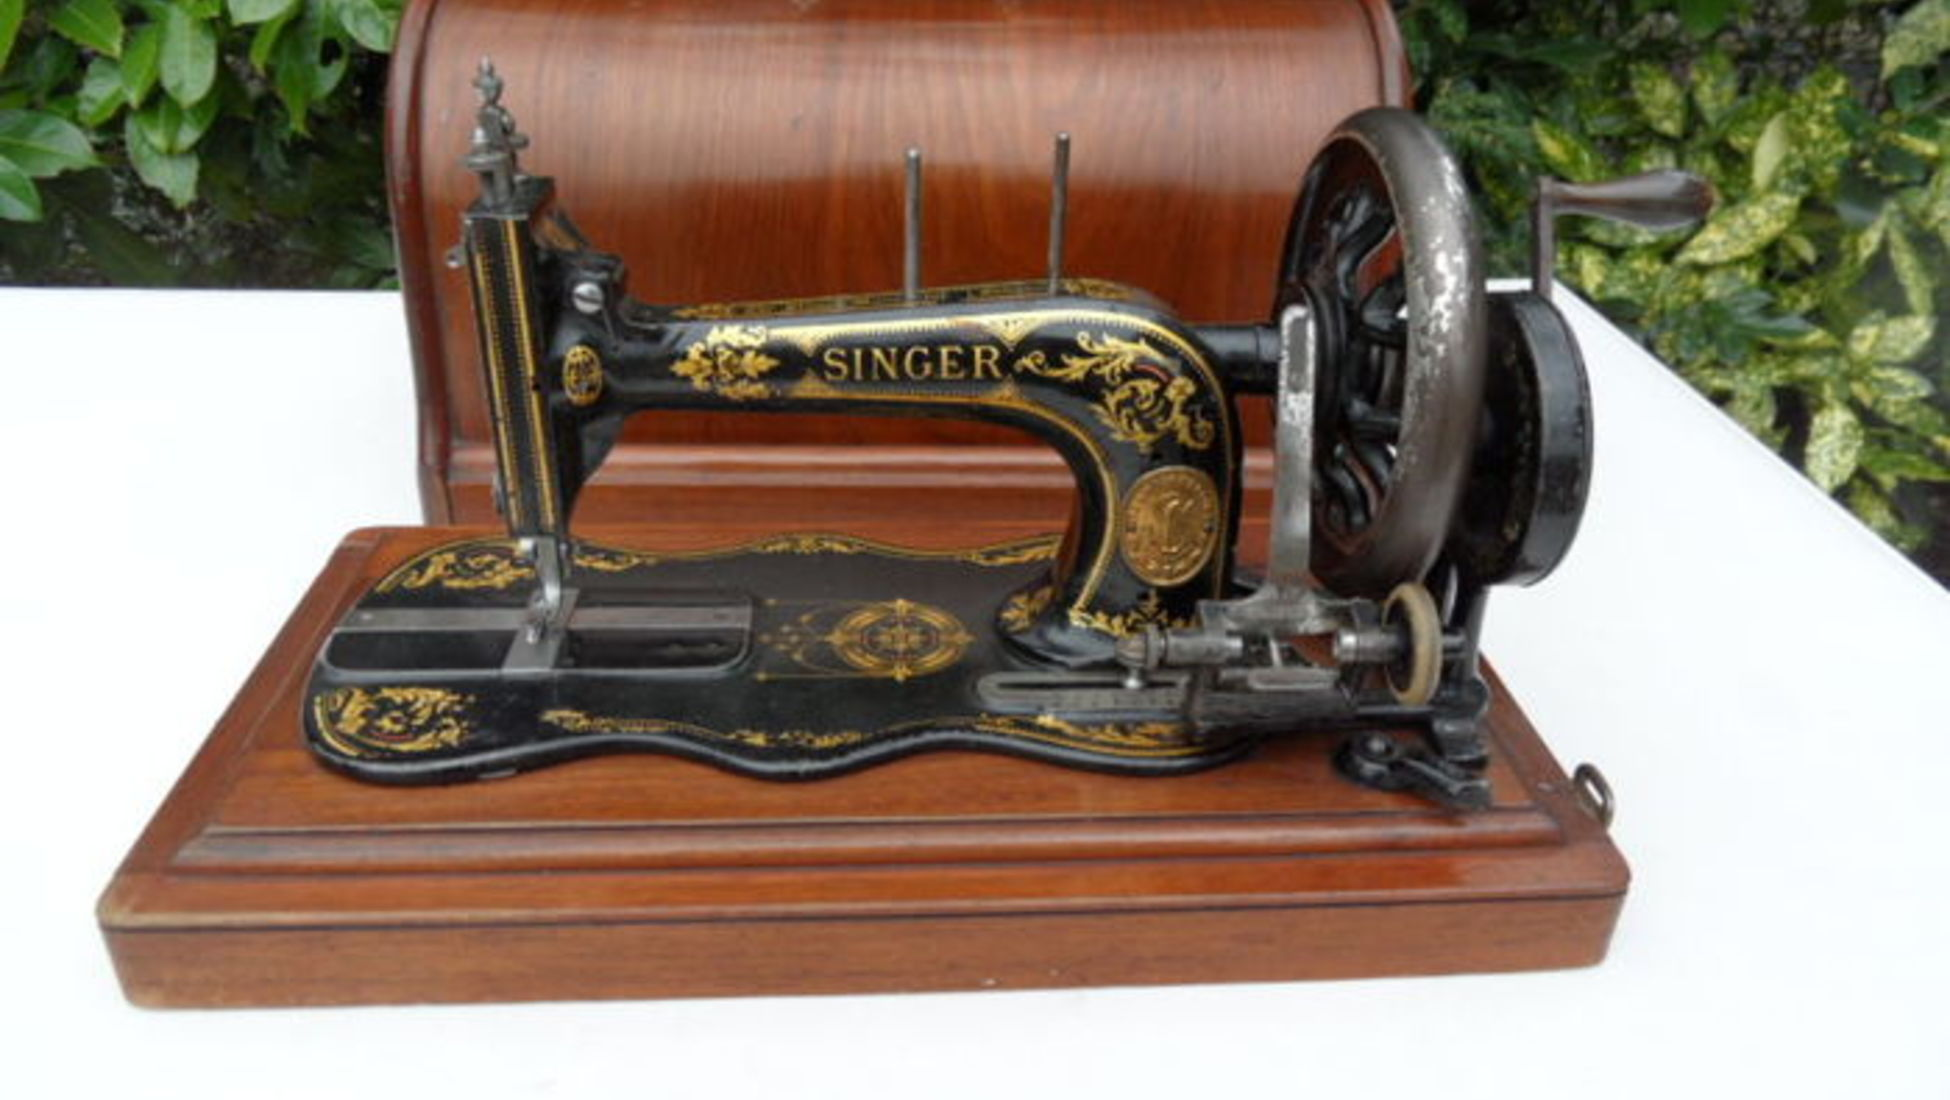 How To Determine The Value Of Your Old Sewing Machine Catawiki Singer 221 K Threading Diagram Following World War Ll Many Japanese Clone Machines Appeared On Market Funded By Money From United States These Clones Were Very